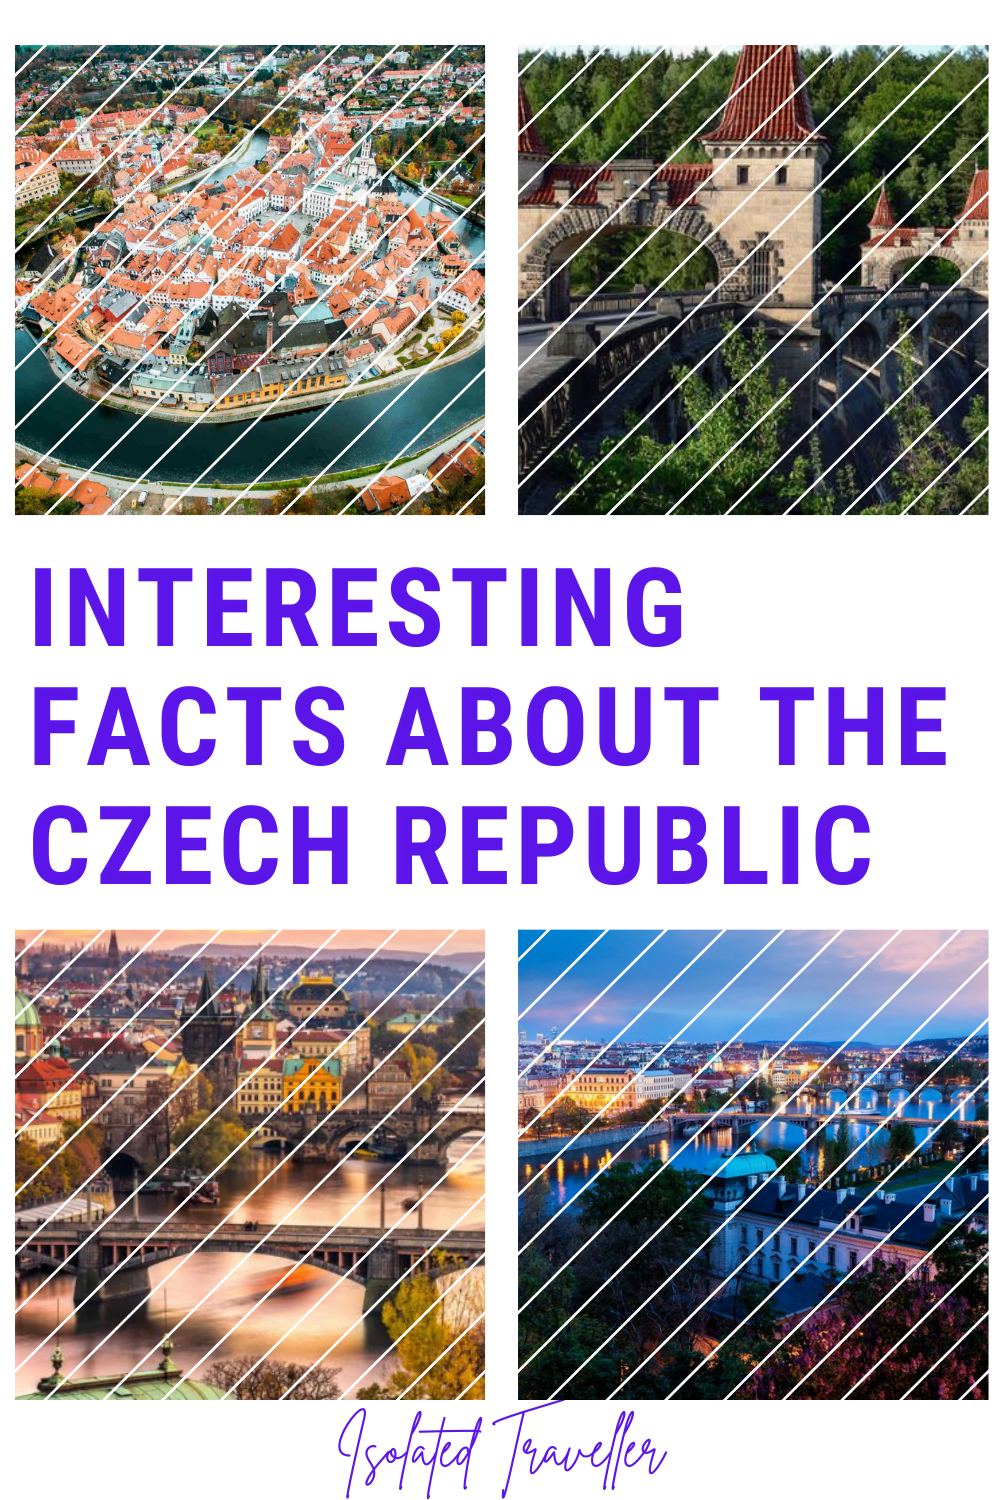 Interesting Facts About The Czechia